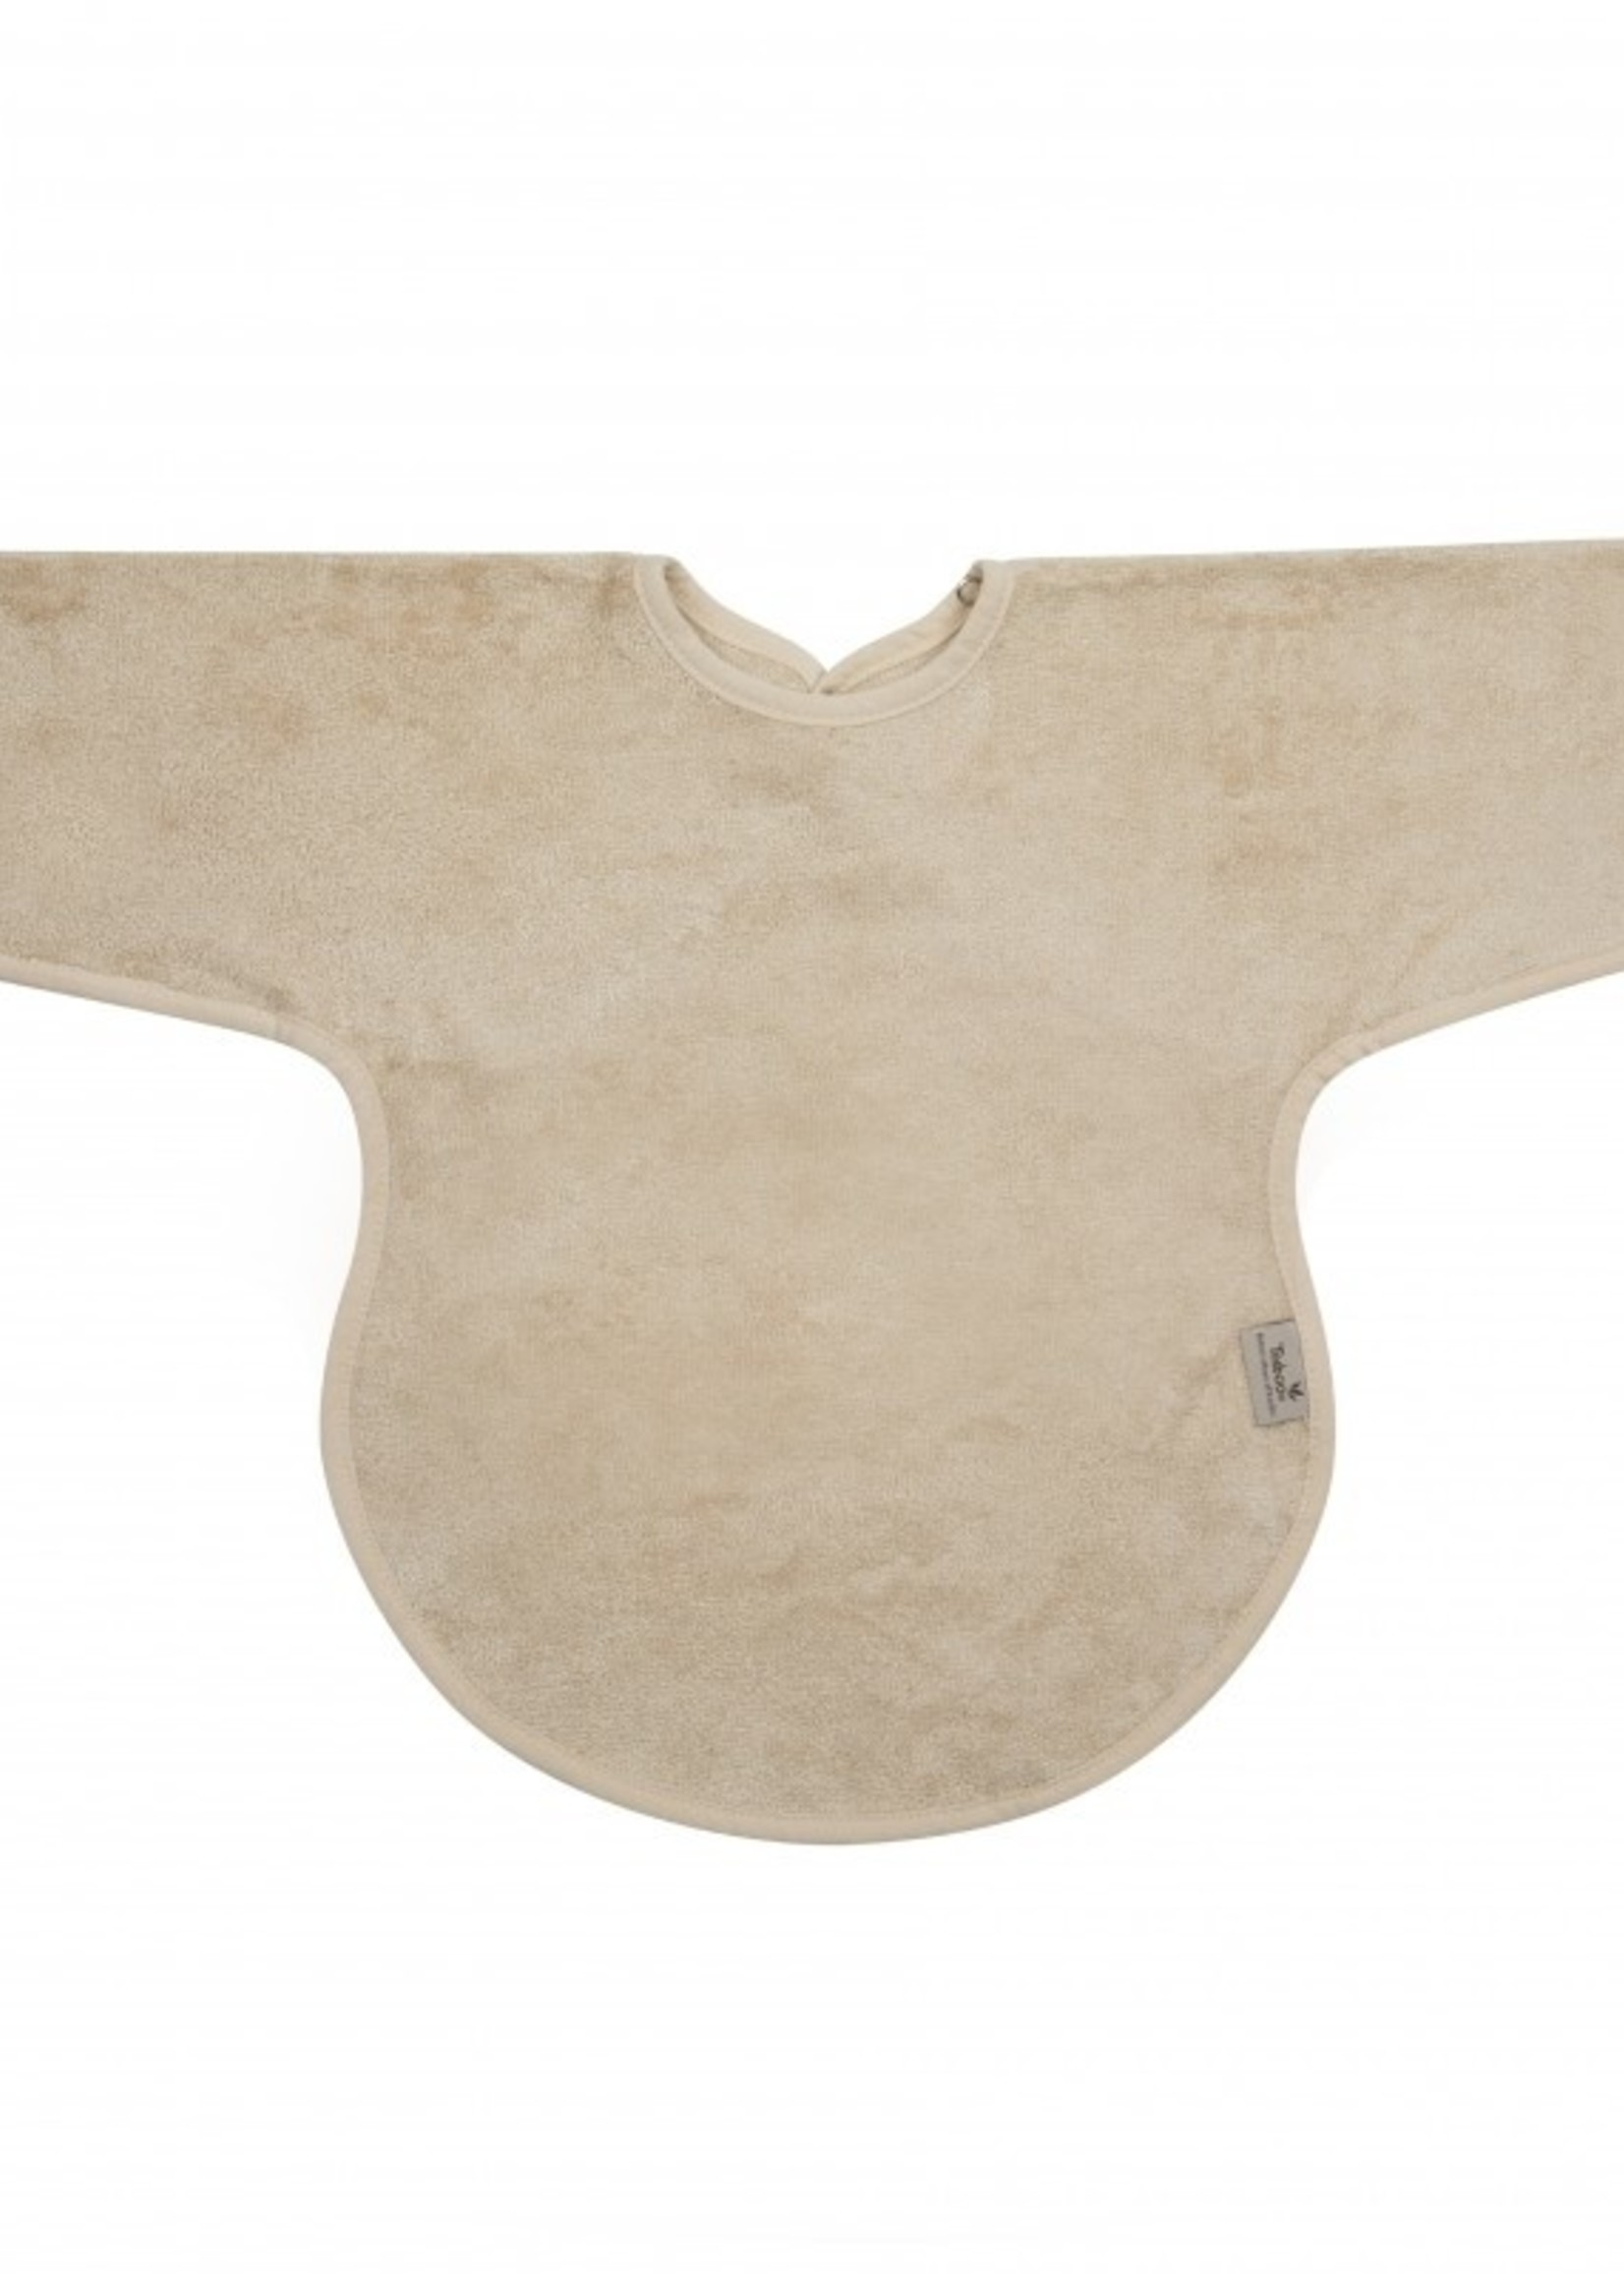 Timboo Bib Long Sleeve - Frosted Almond